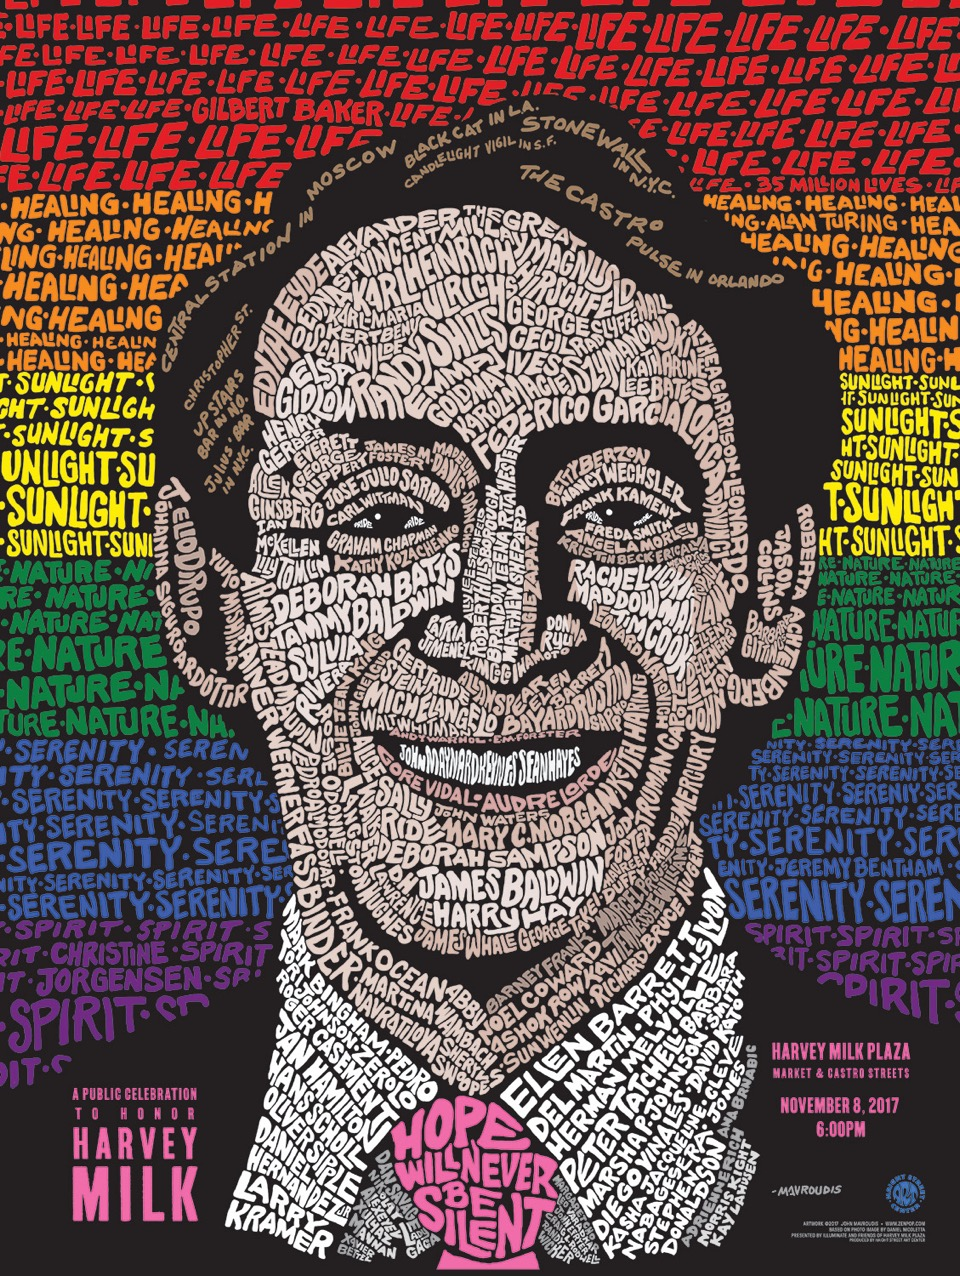 www.HonorHarveyMilk.org